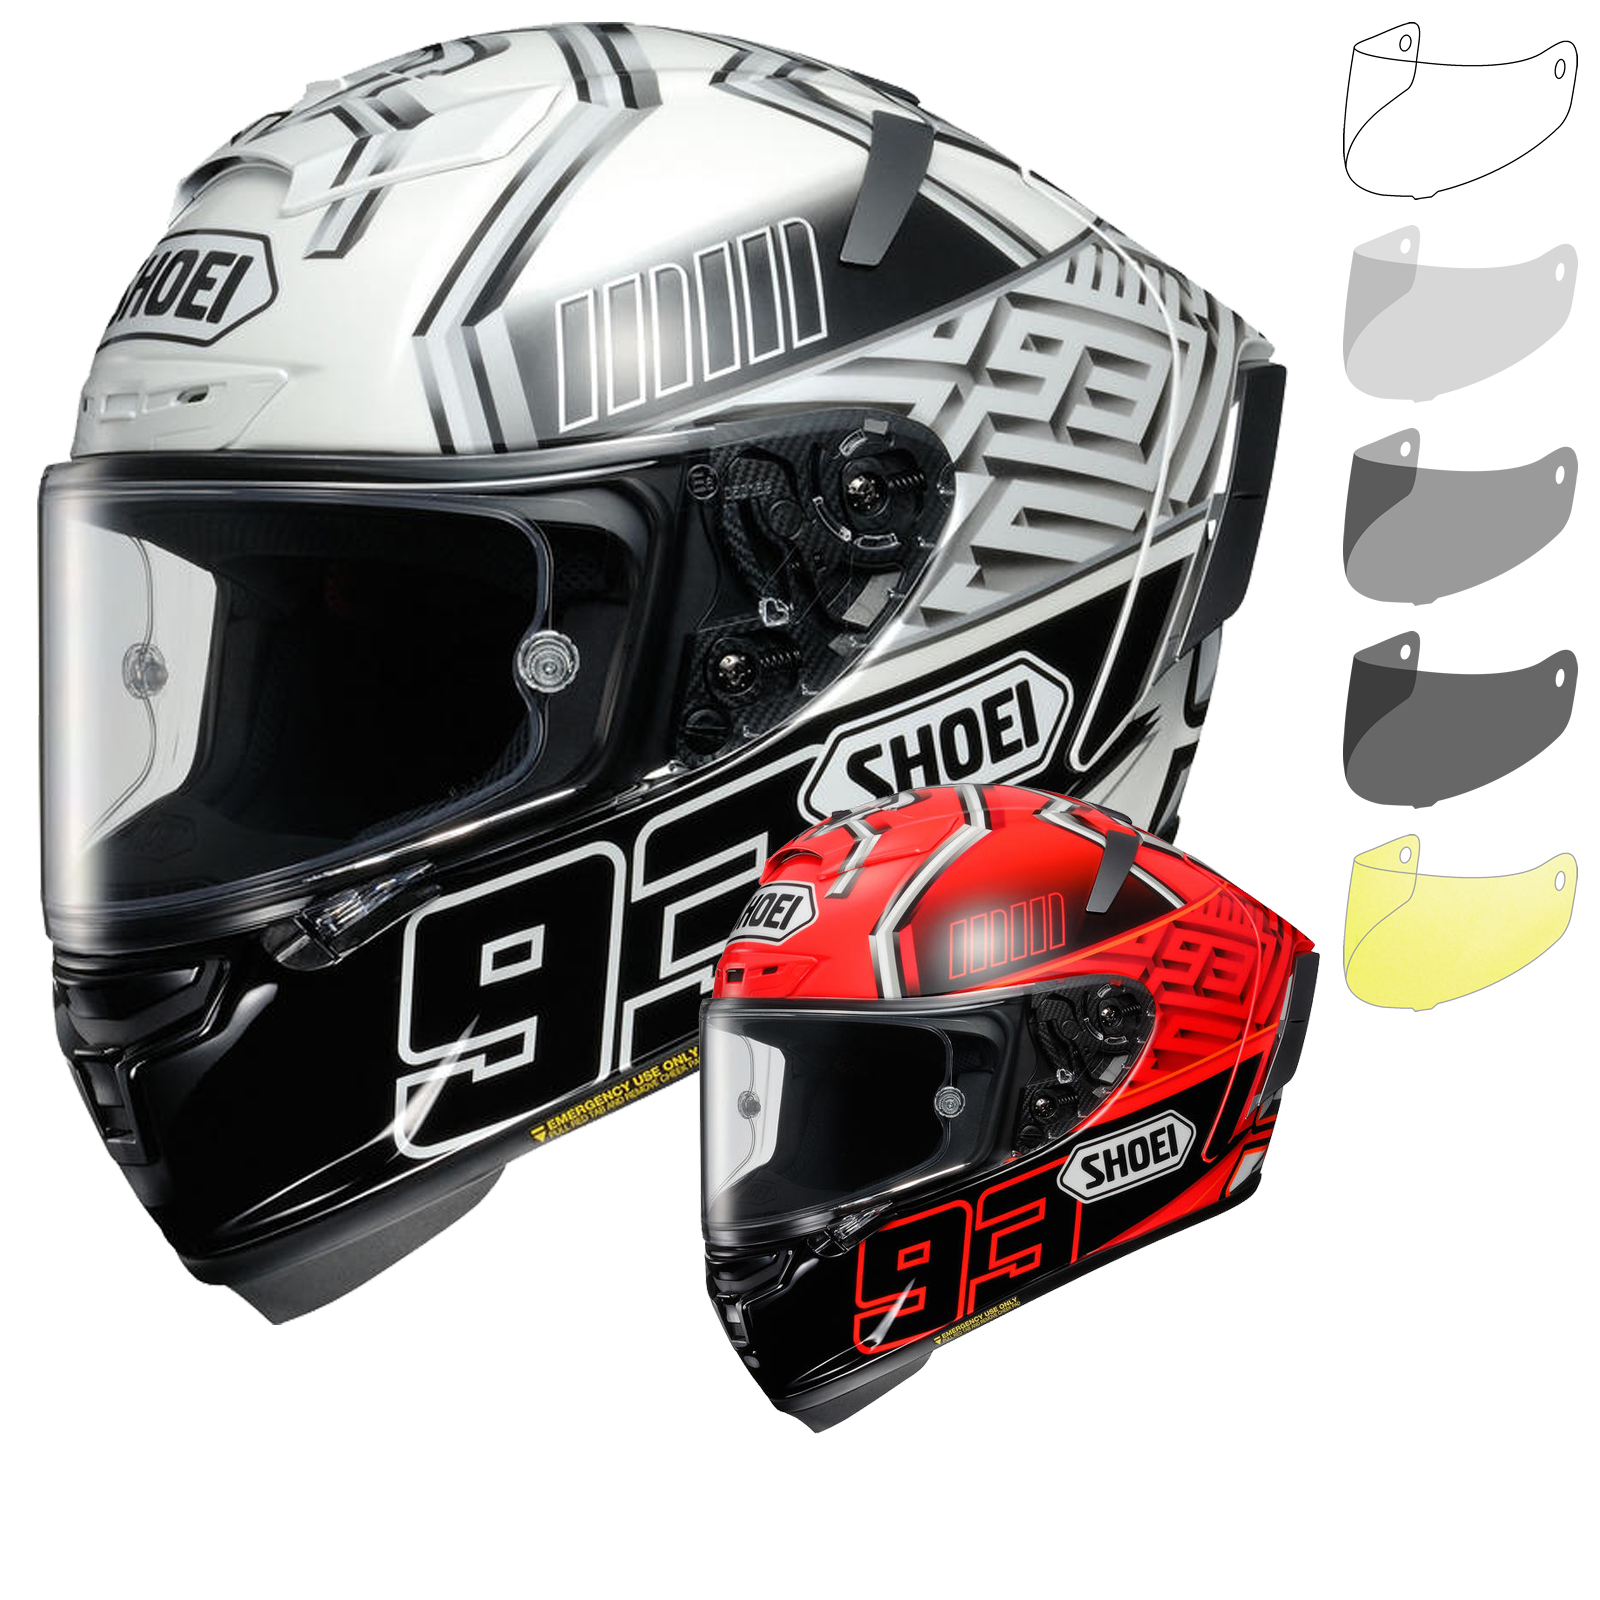 shoei x spirit 3 marquez motorcycle helmet visor x spirit 3 helmets. Black Bedroom Furniture Sets. Home Design Ideas